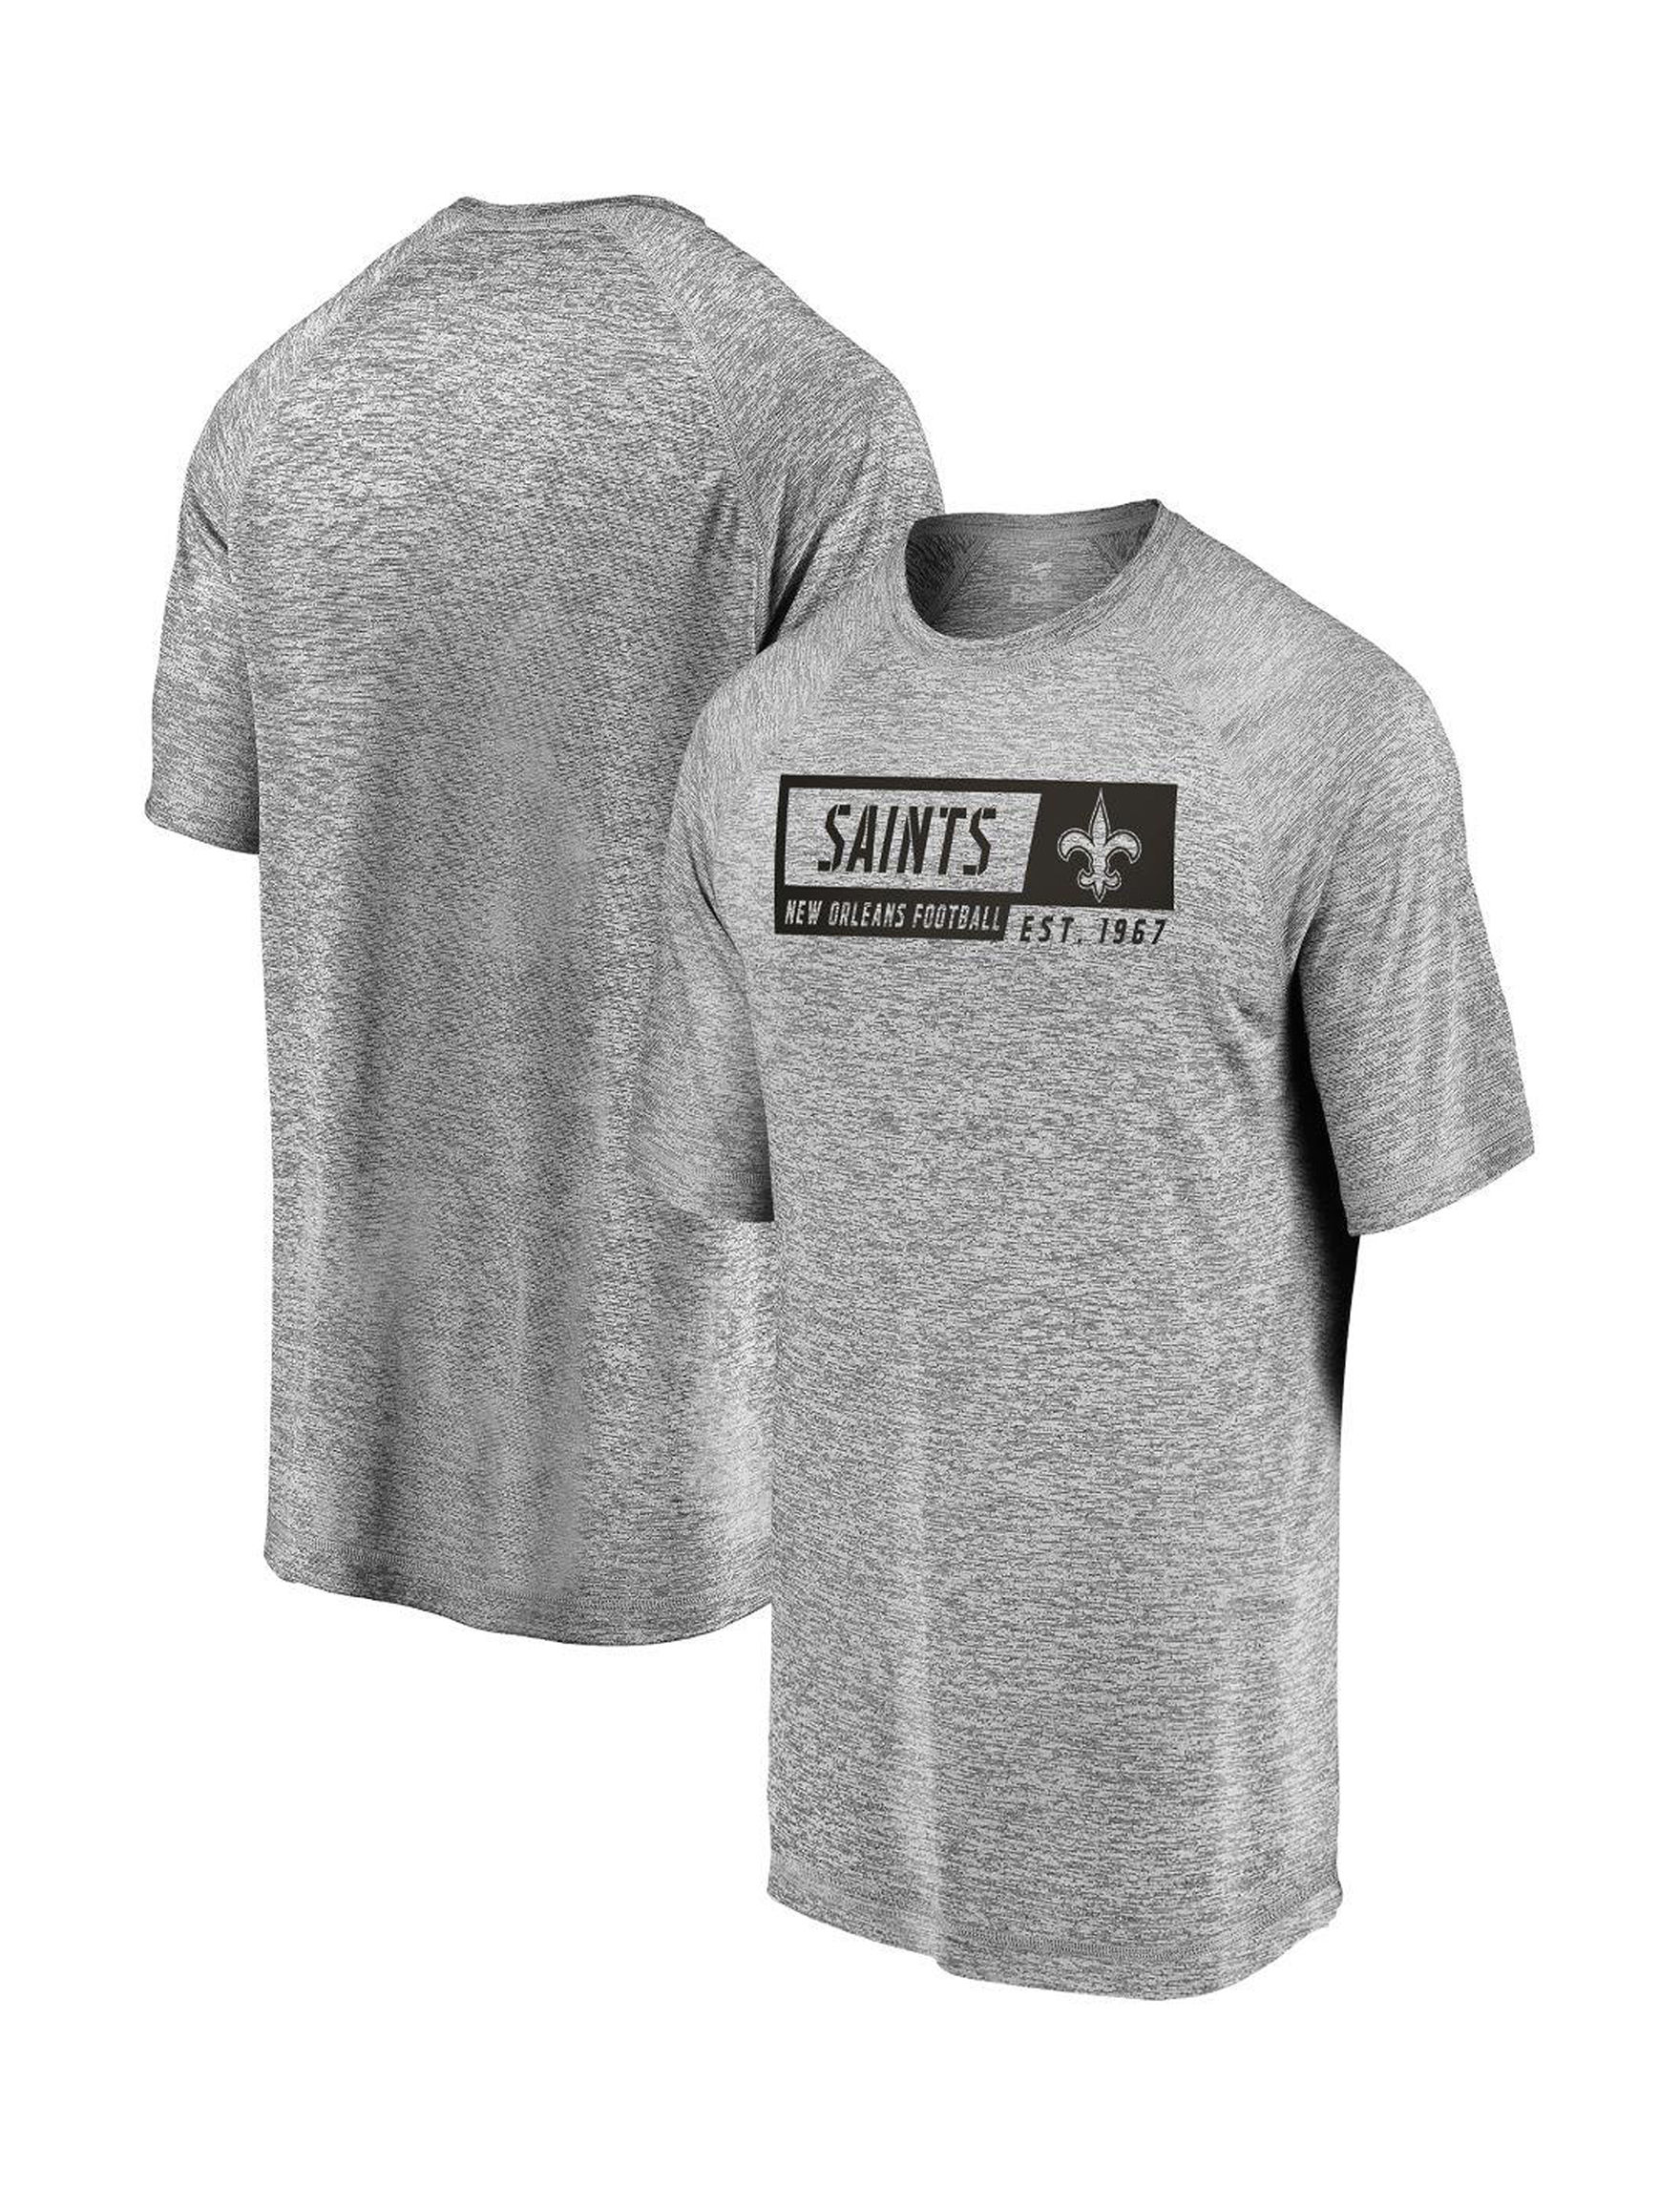 NFL Heather Grey Tees & Tanks